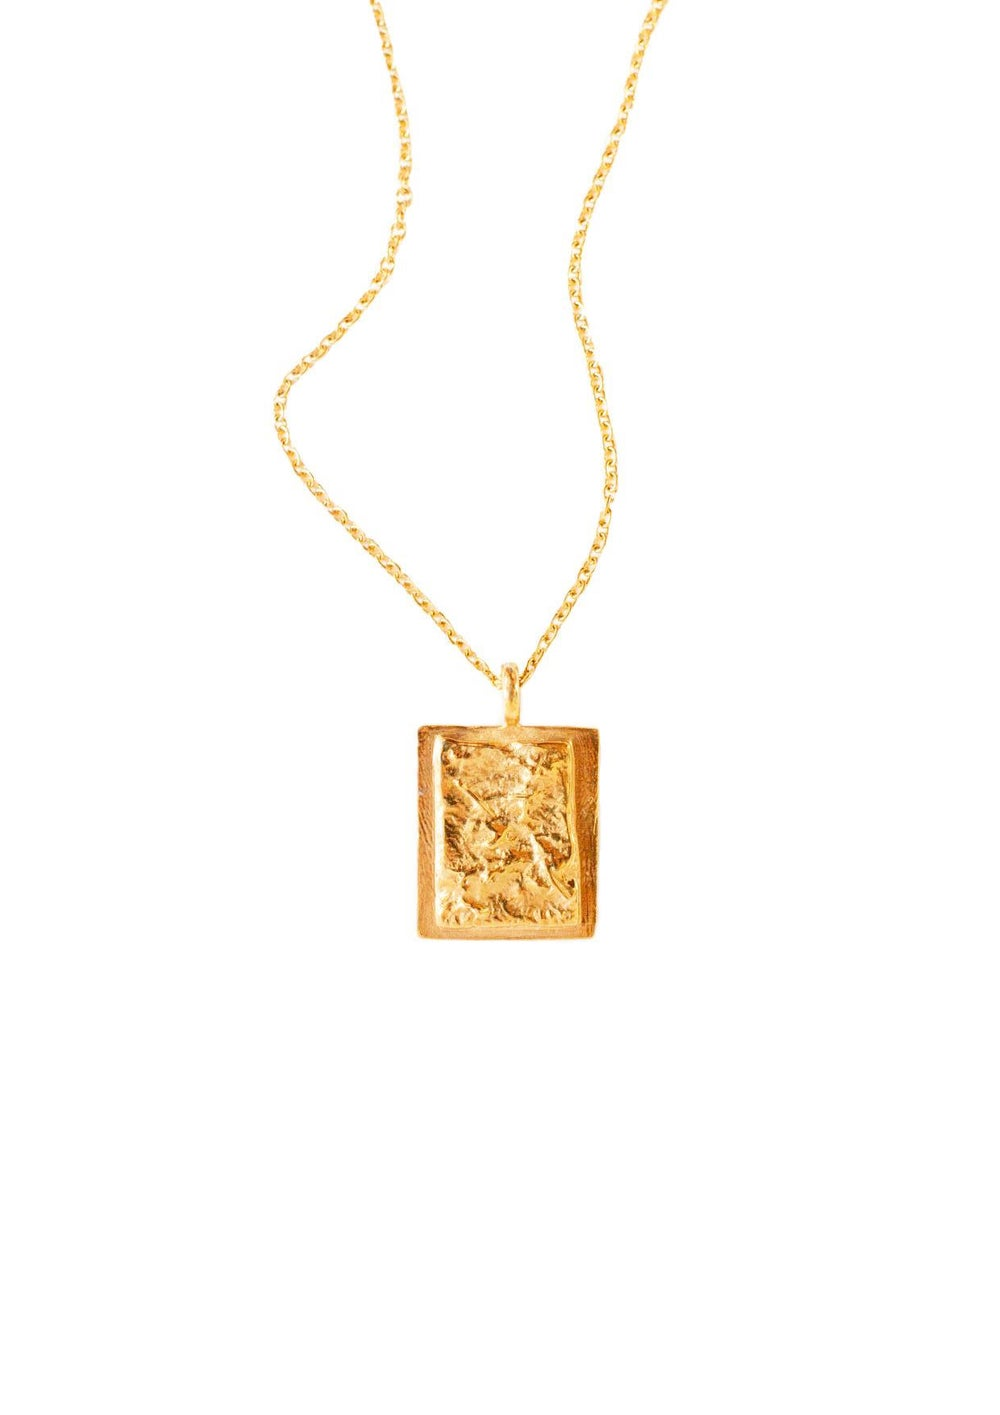 Image of  Style 02 - Gold Plated